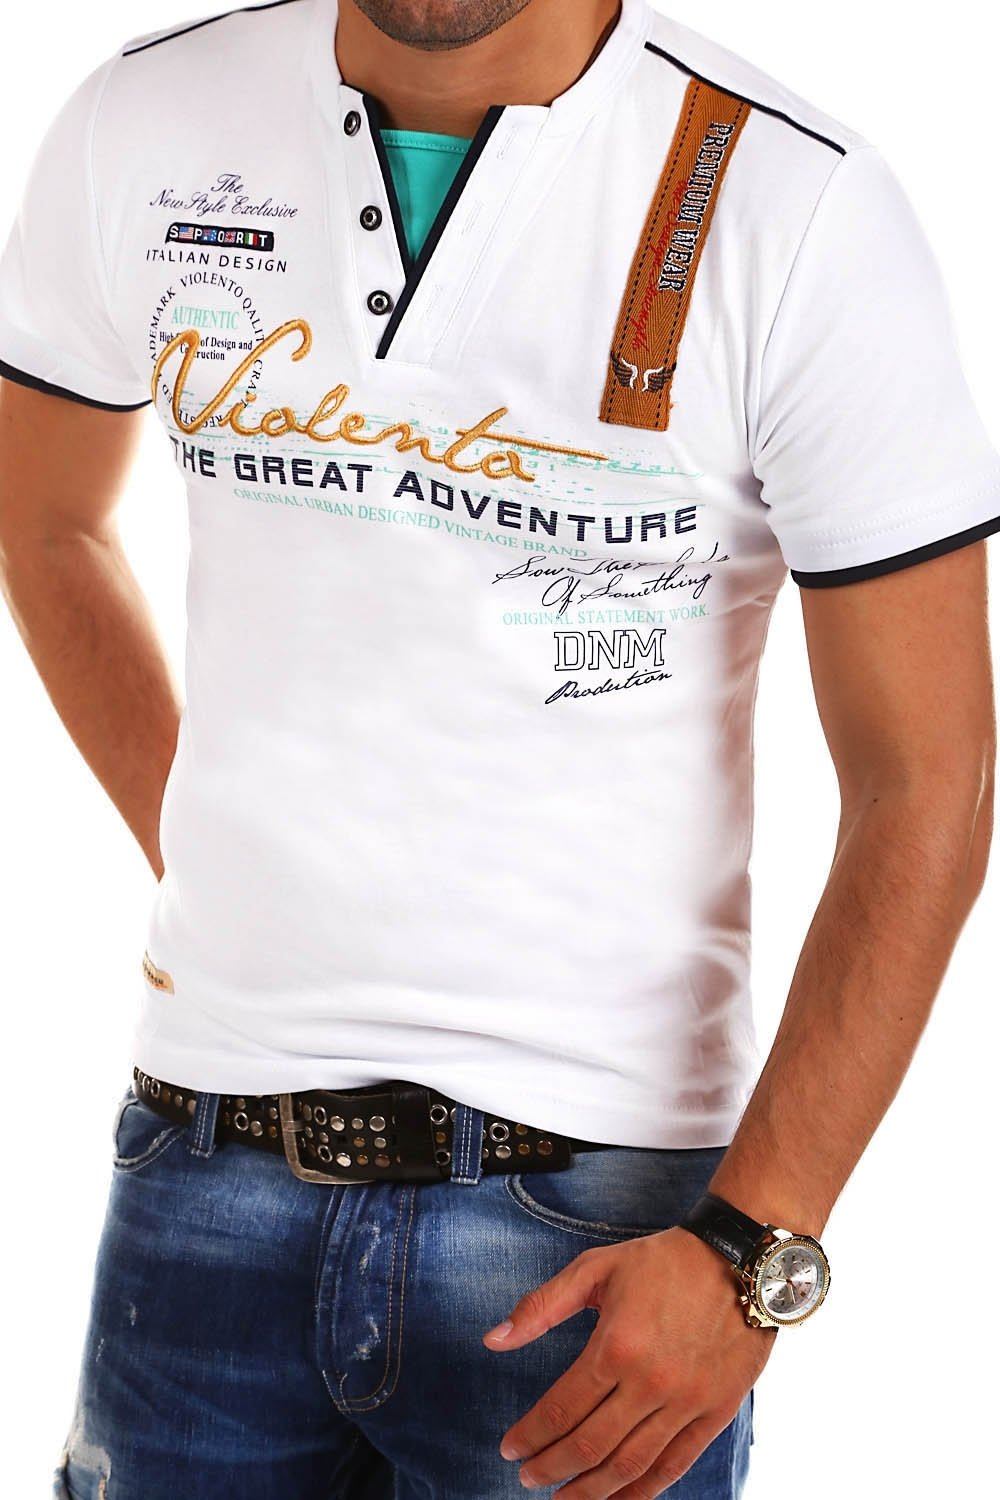 MT Styles 2in1 T-Shirt ADVENTURE short sleeve R-2693: Amazon.co.uk: Clothing